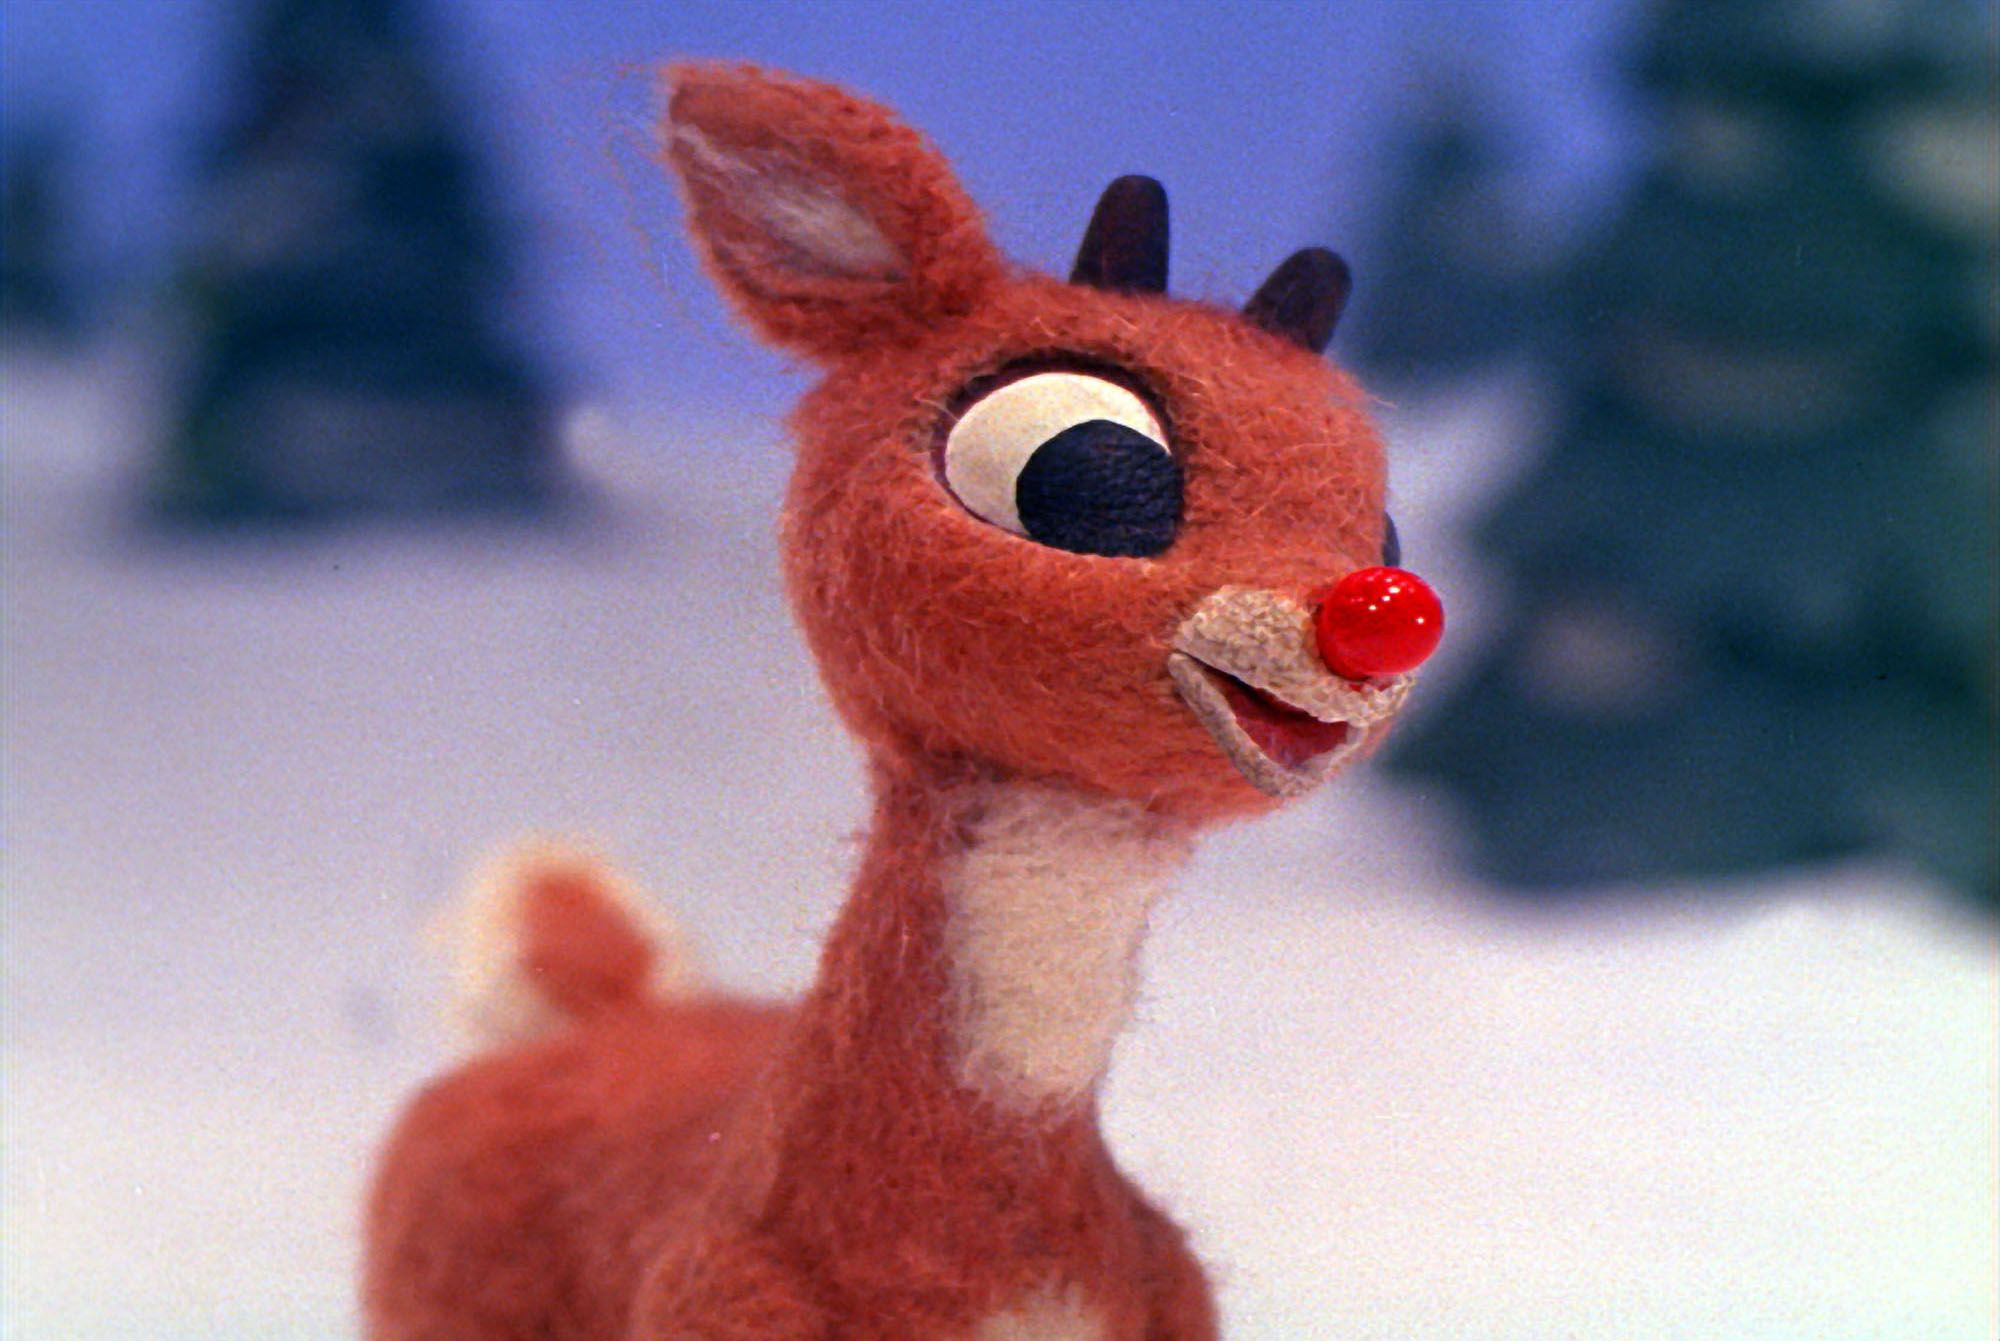 Let's Talk About Rudolph